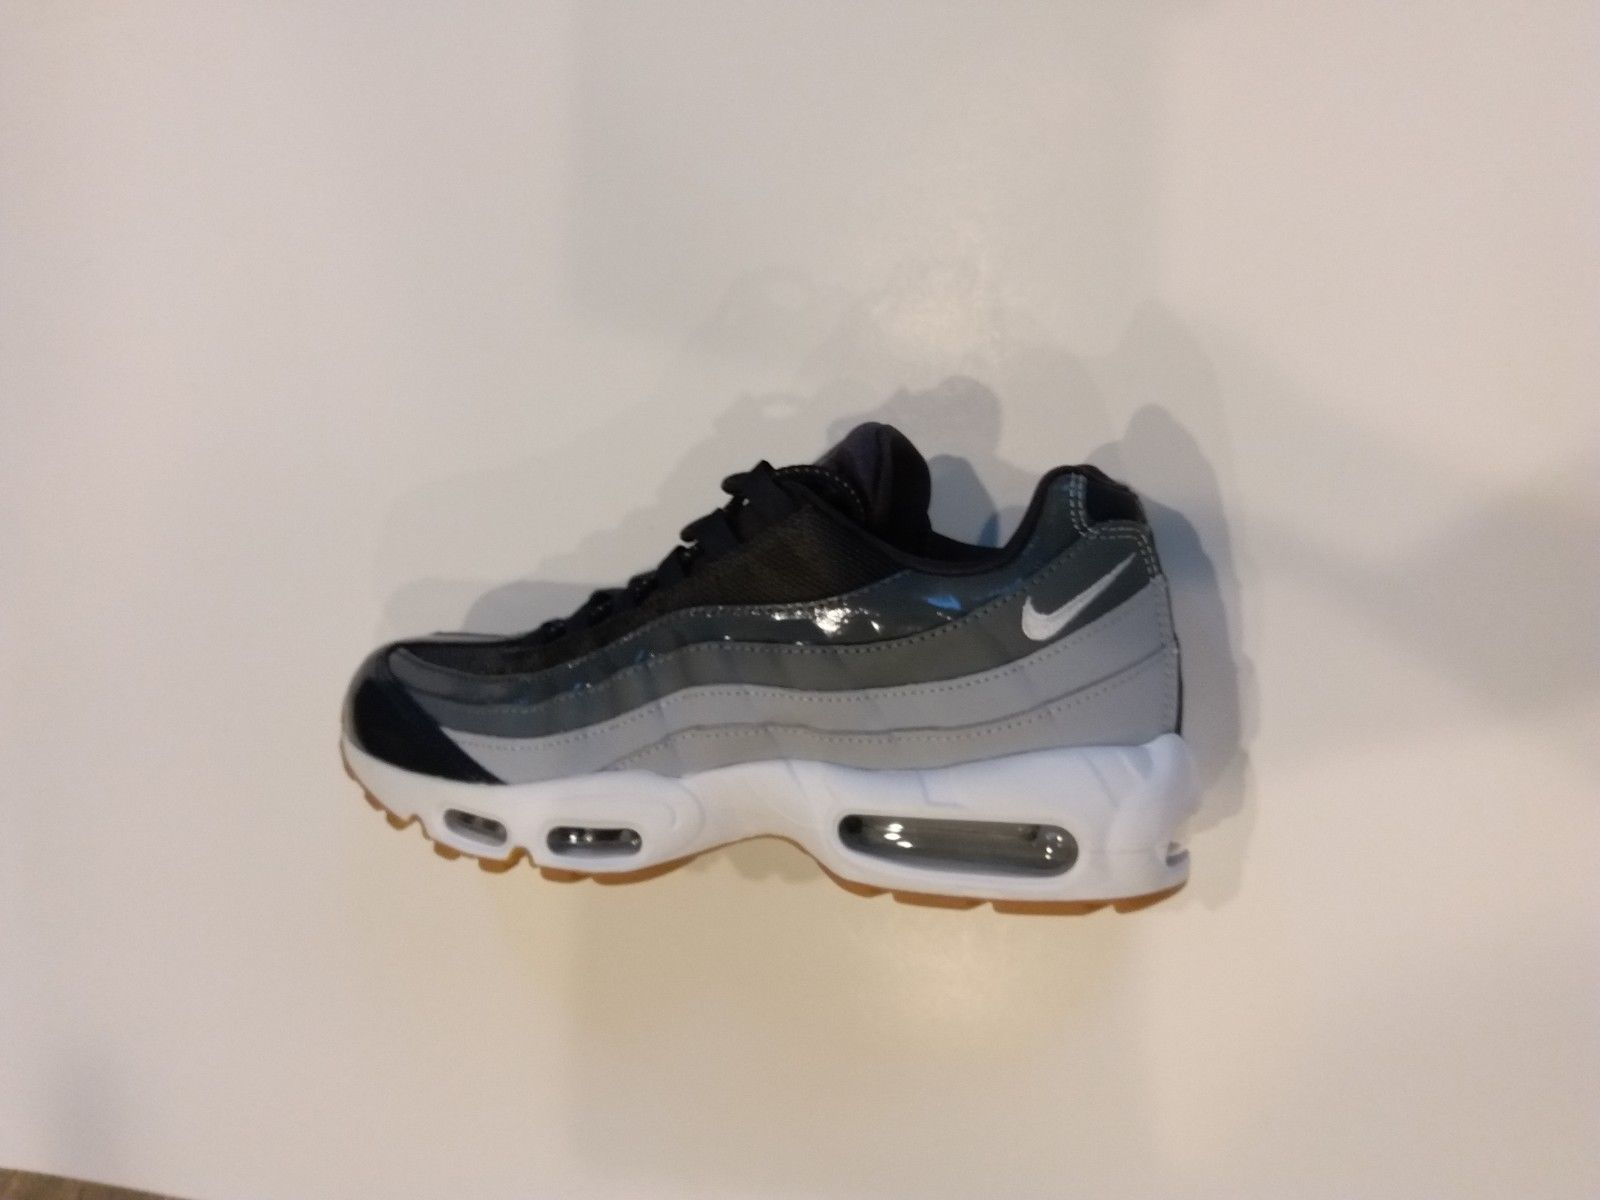 buy popular 22e30 97bd2 Nike Air Max 95 Womens Size10 Running Shoe and 15 similar items. 57